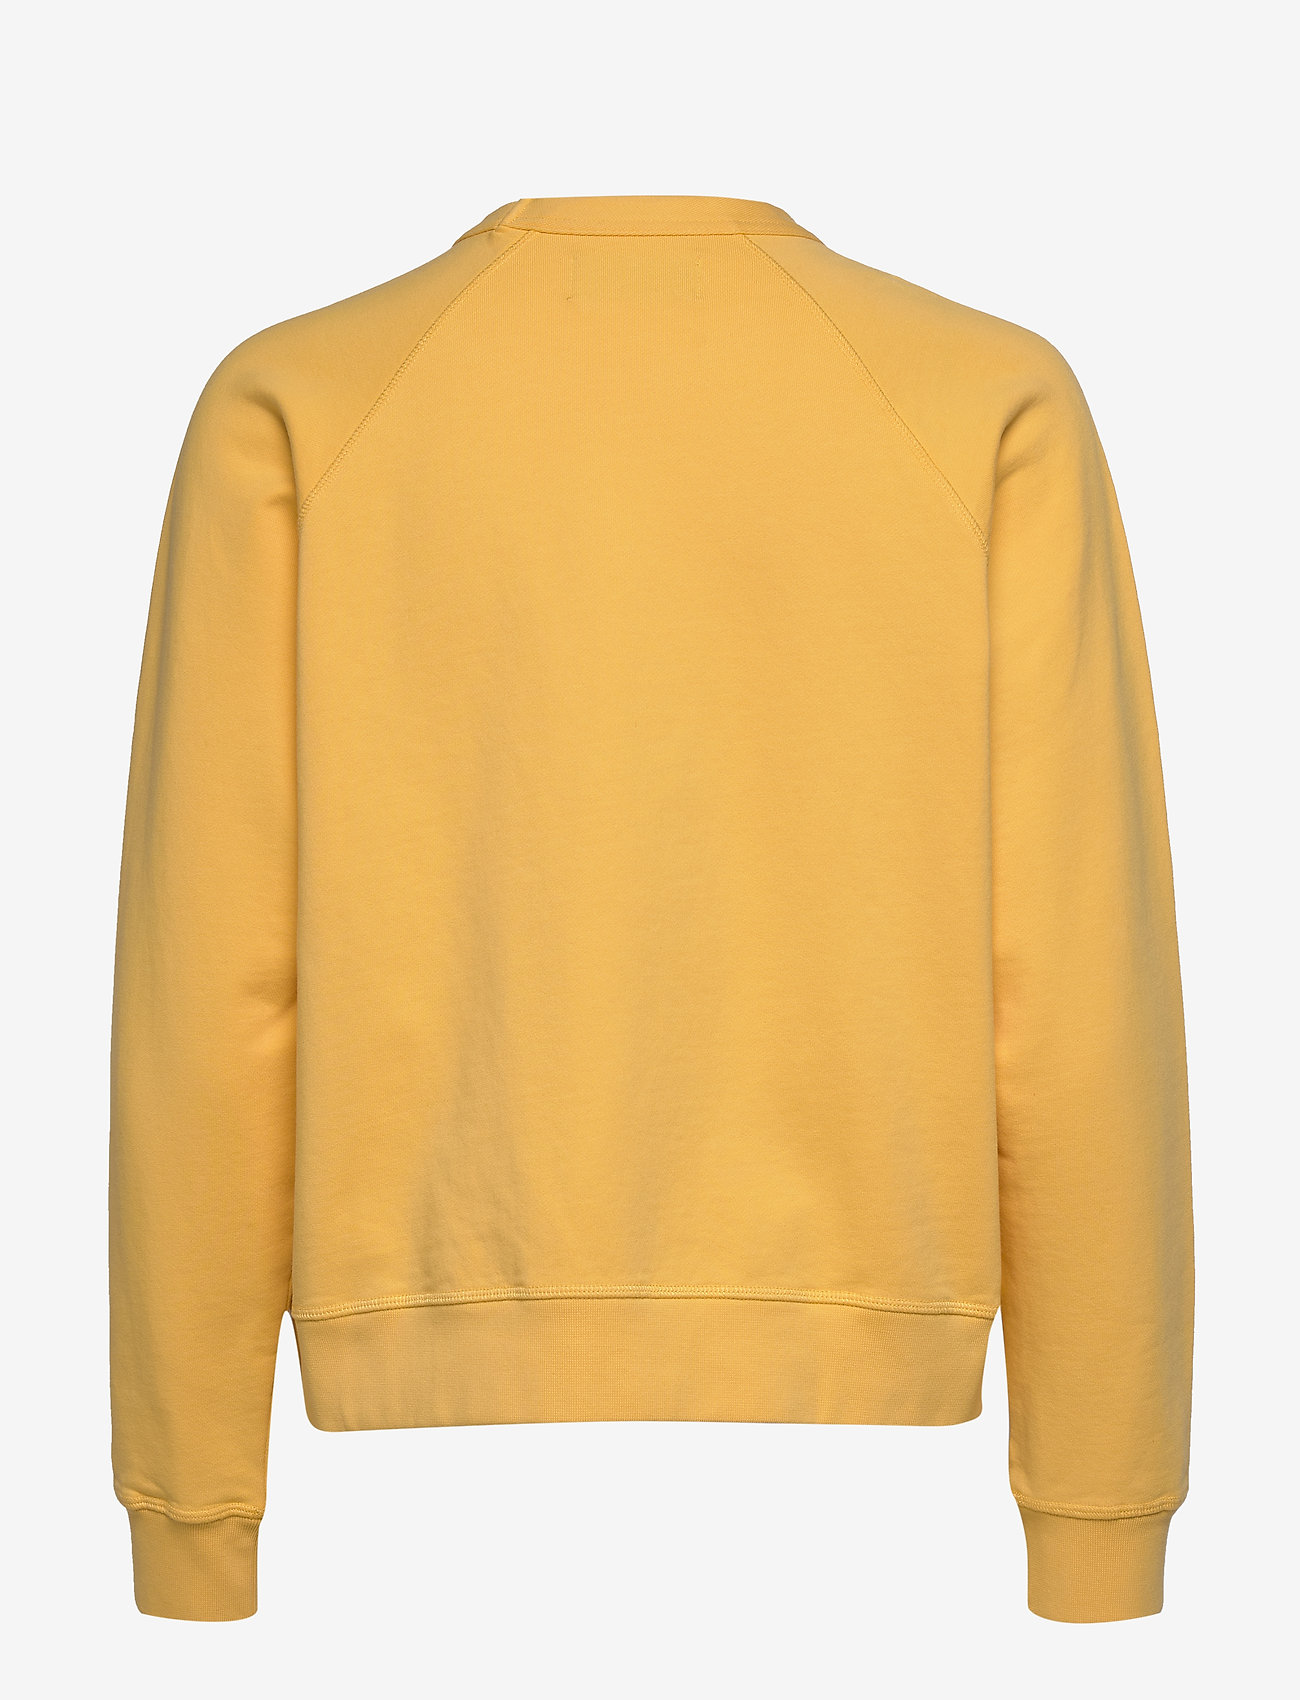 Wood Wood - Jerri sweatshirt - sweatshirts - yellow - 1